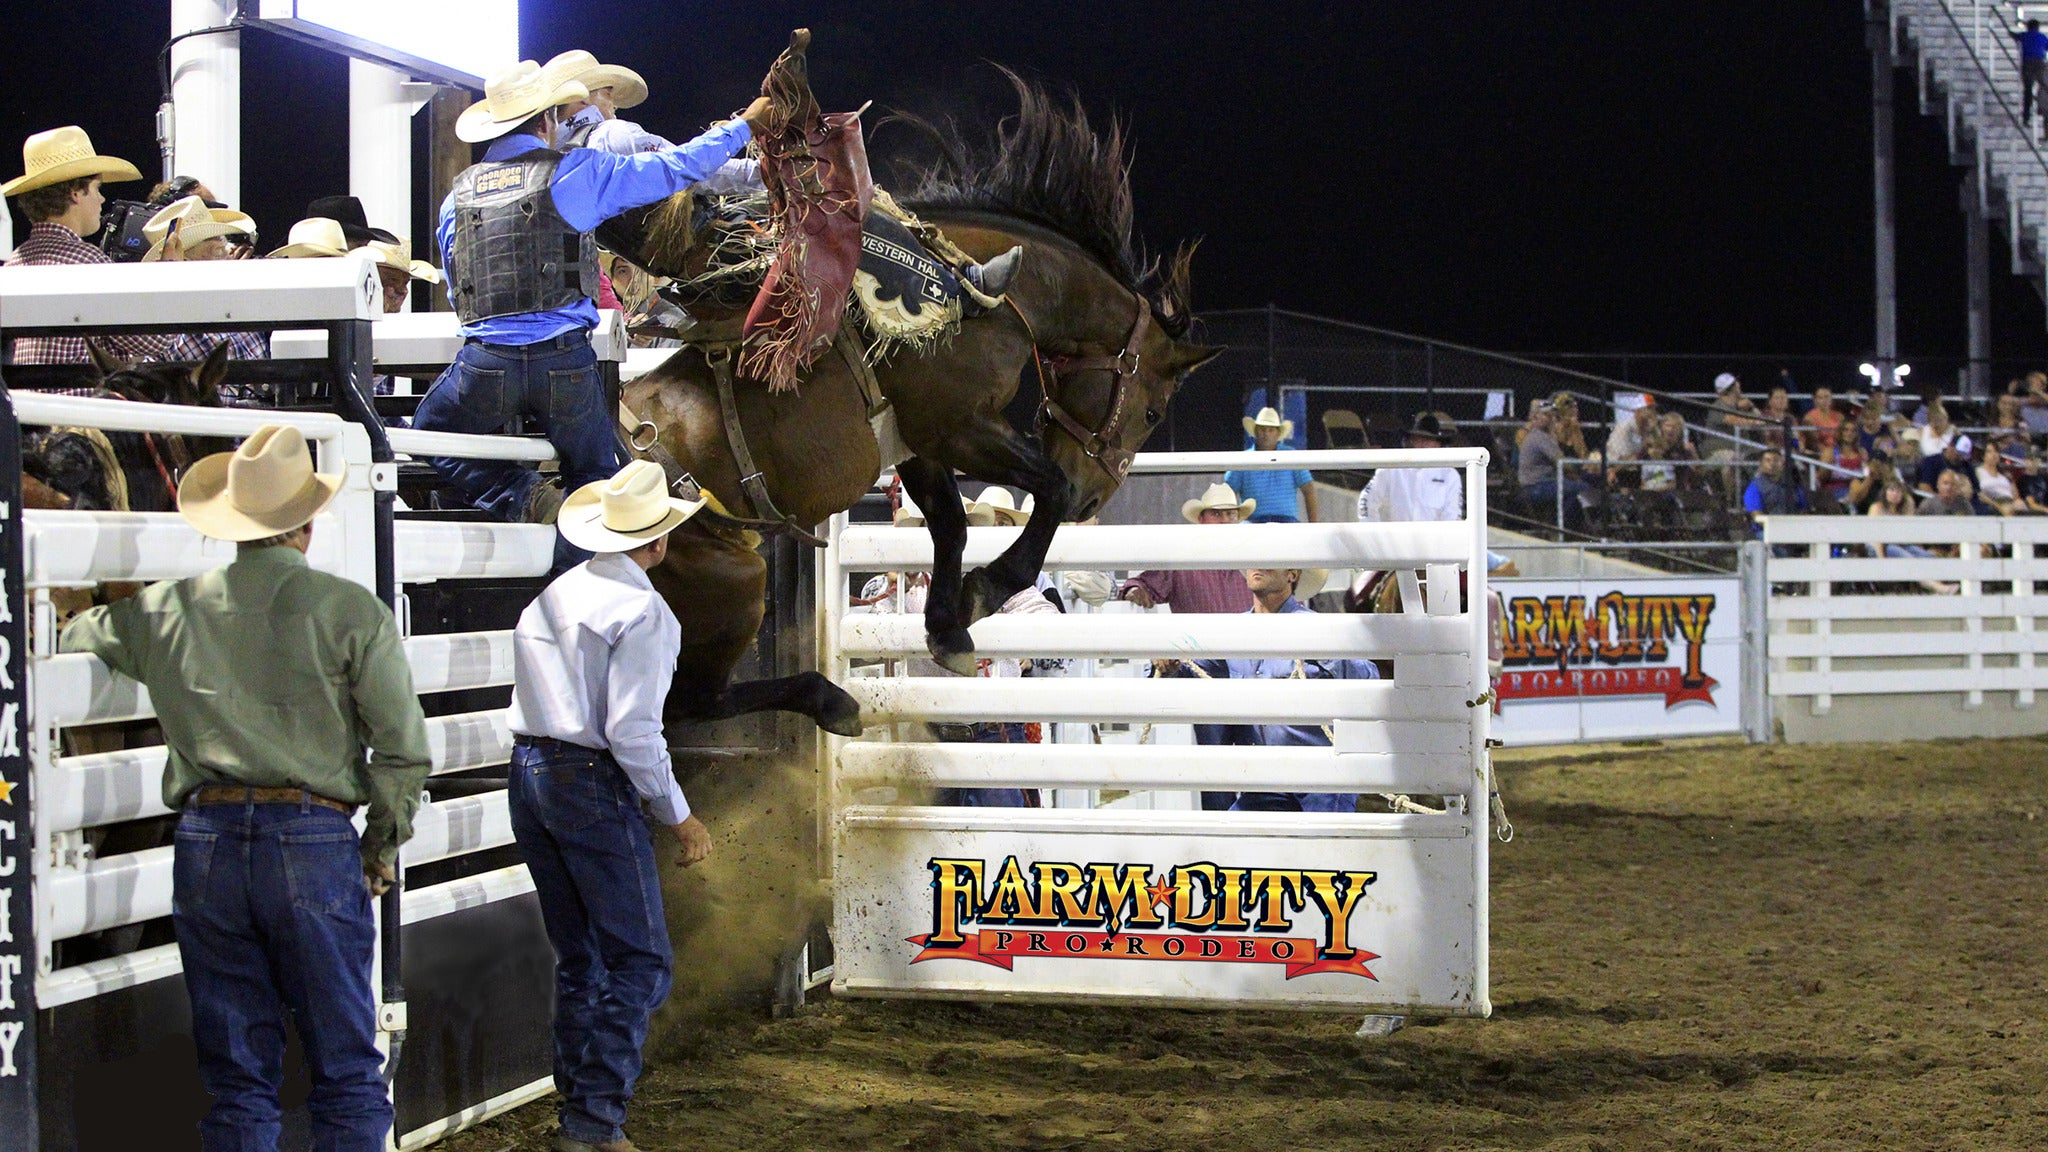 Farm-City Pro Rodeo